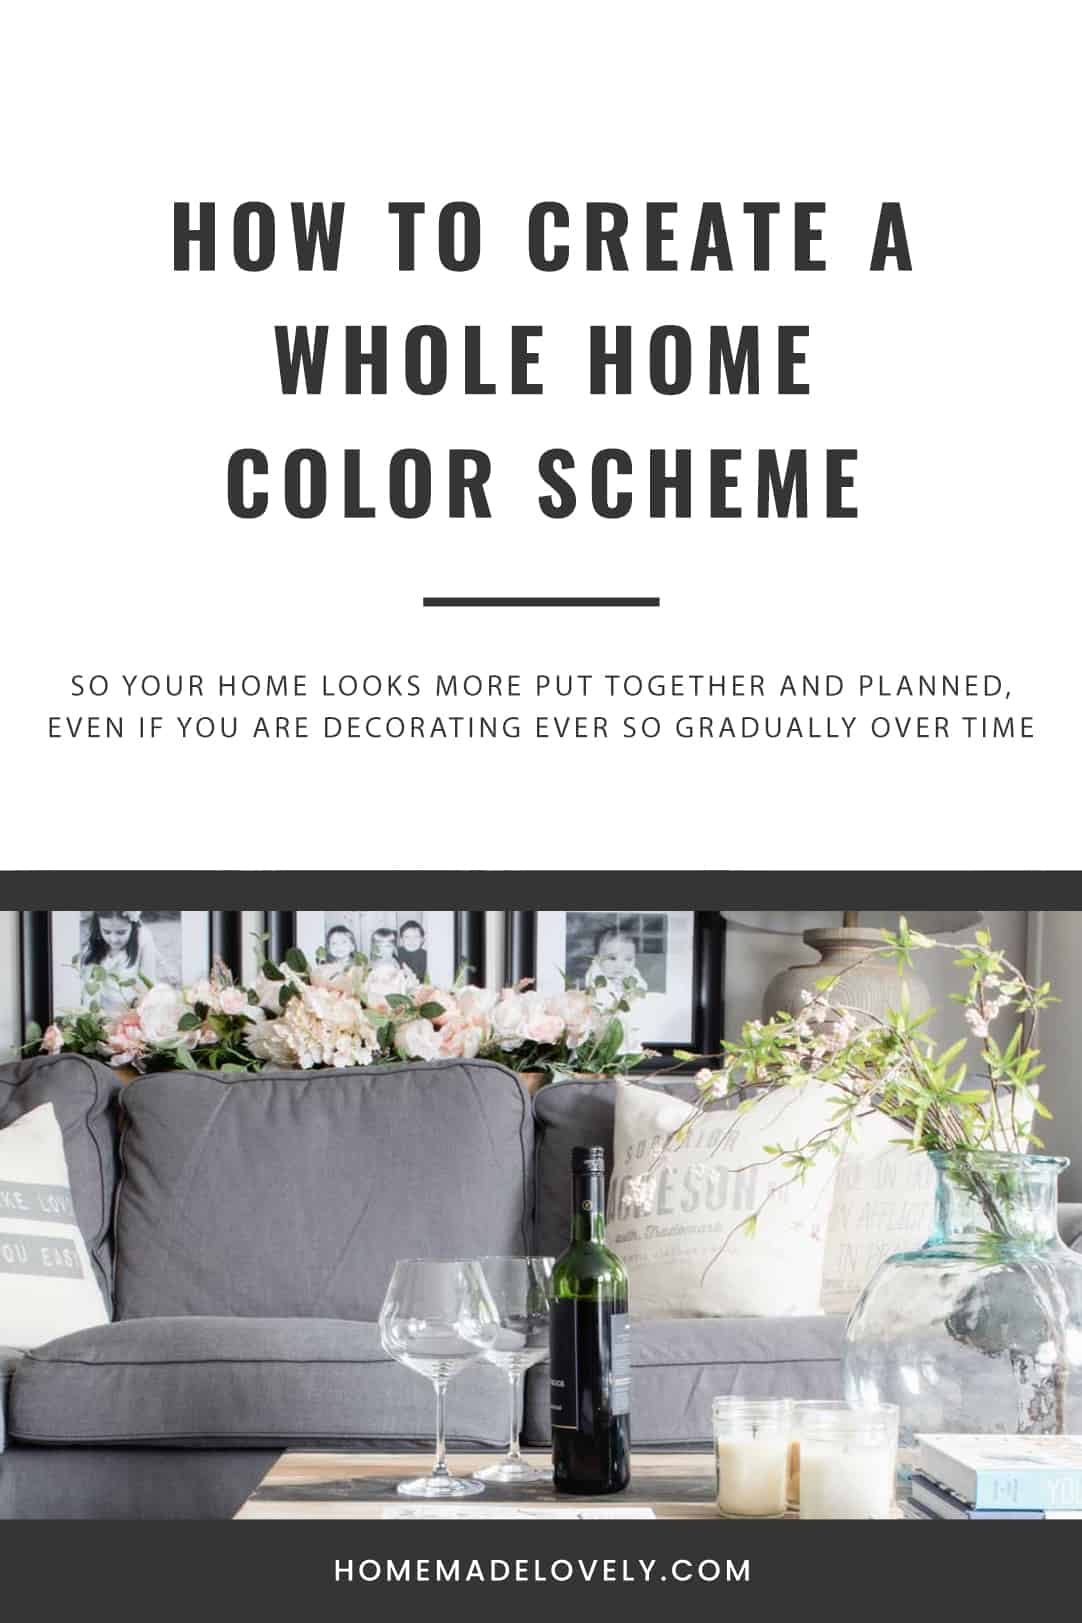 How to create a whole home color scheme